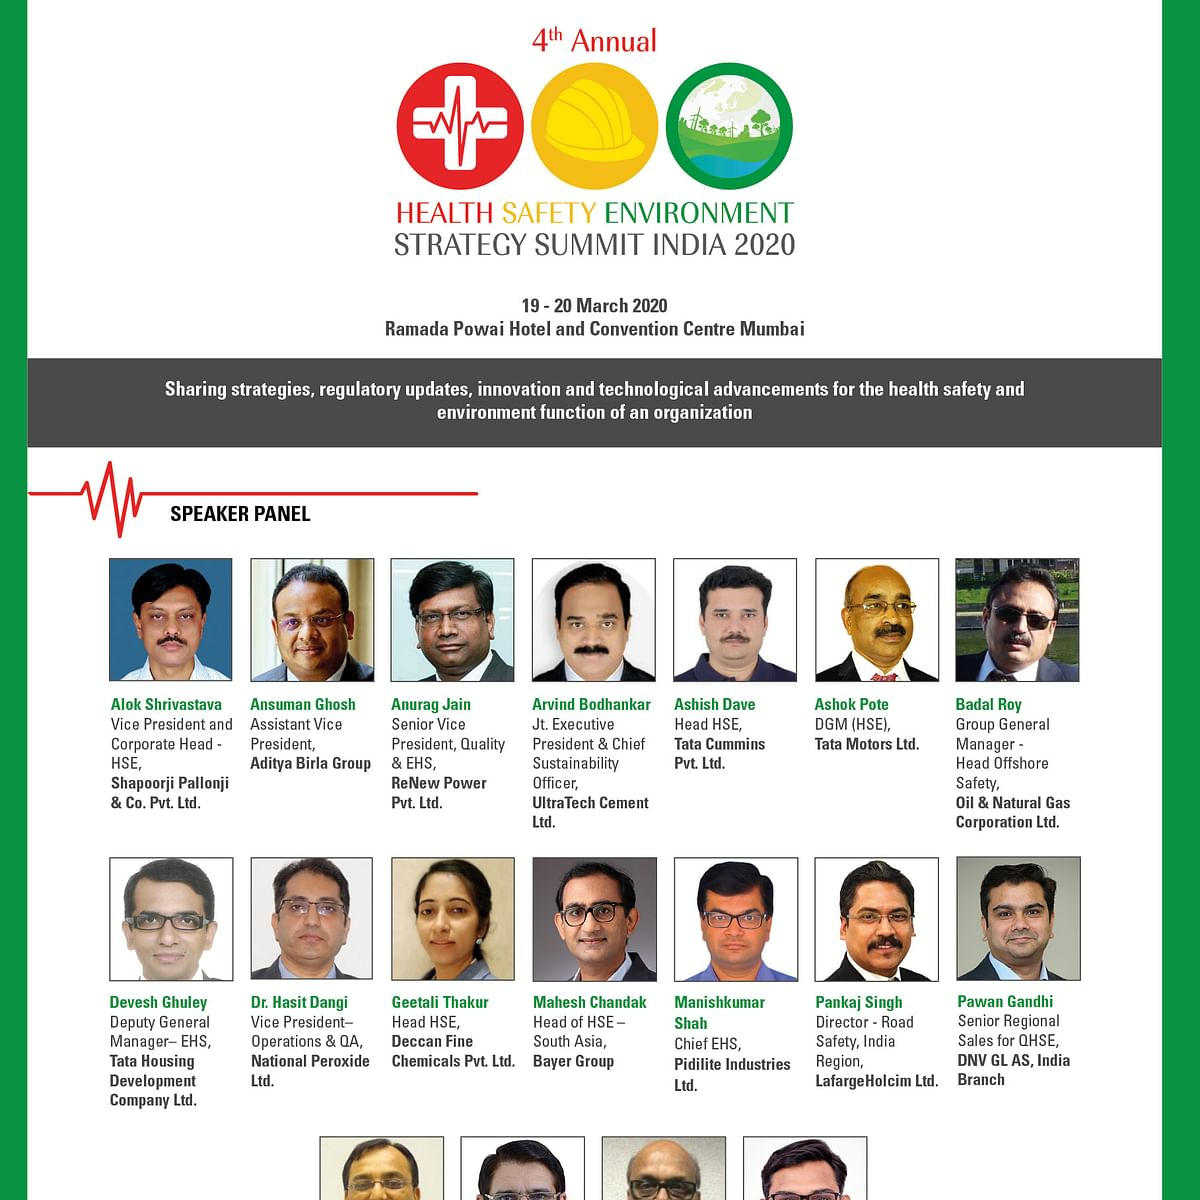 Benchmark your HSE standard at 4th Annual HSE Strategy Summit India 2020